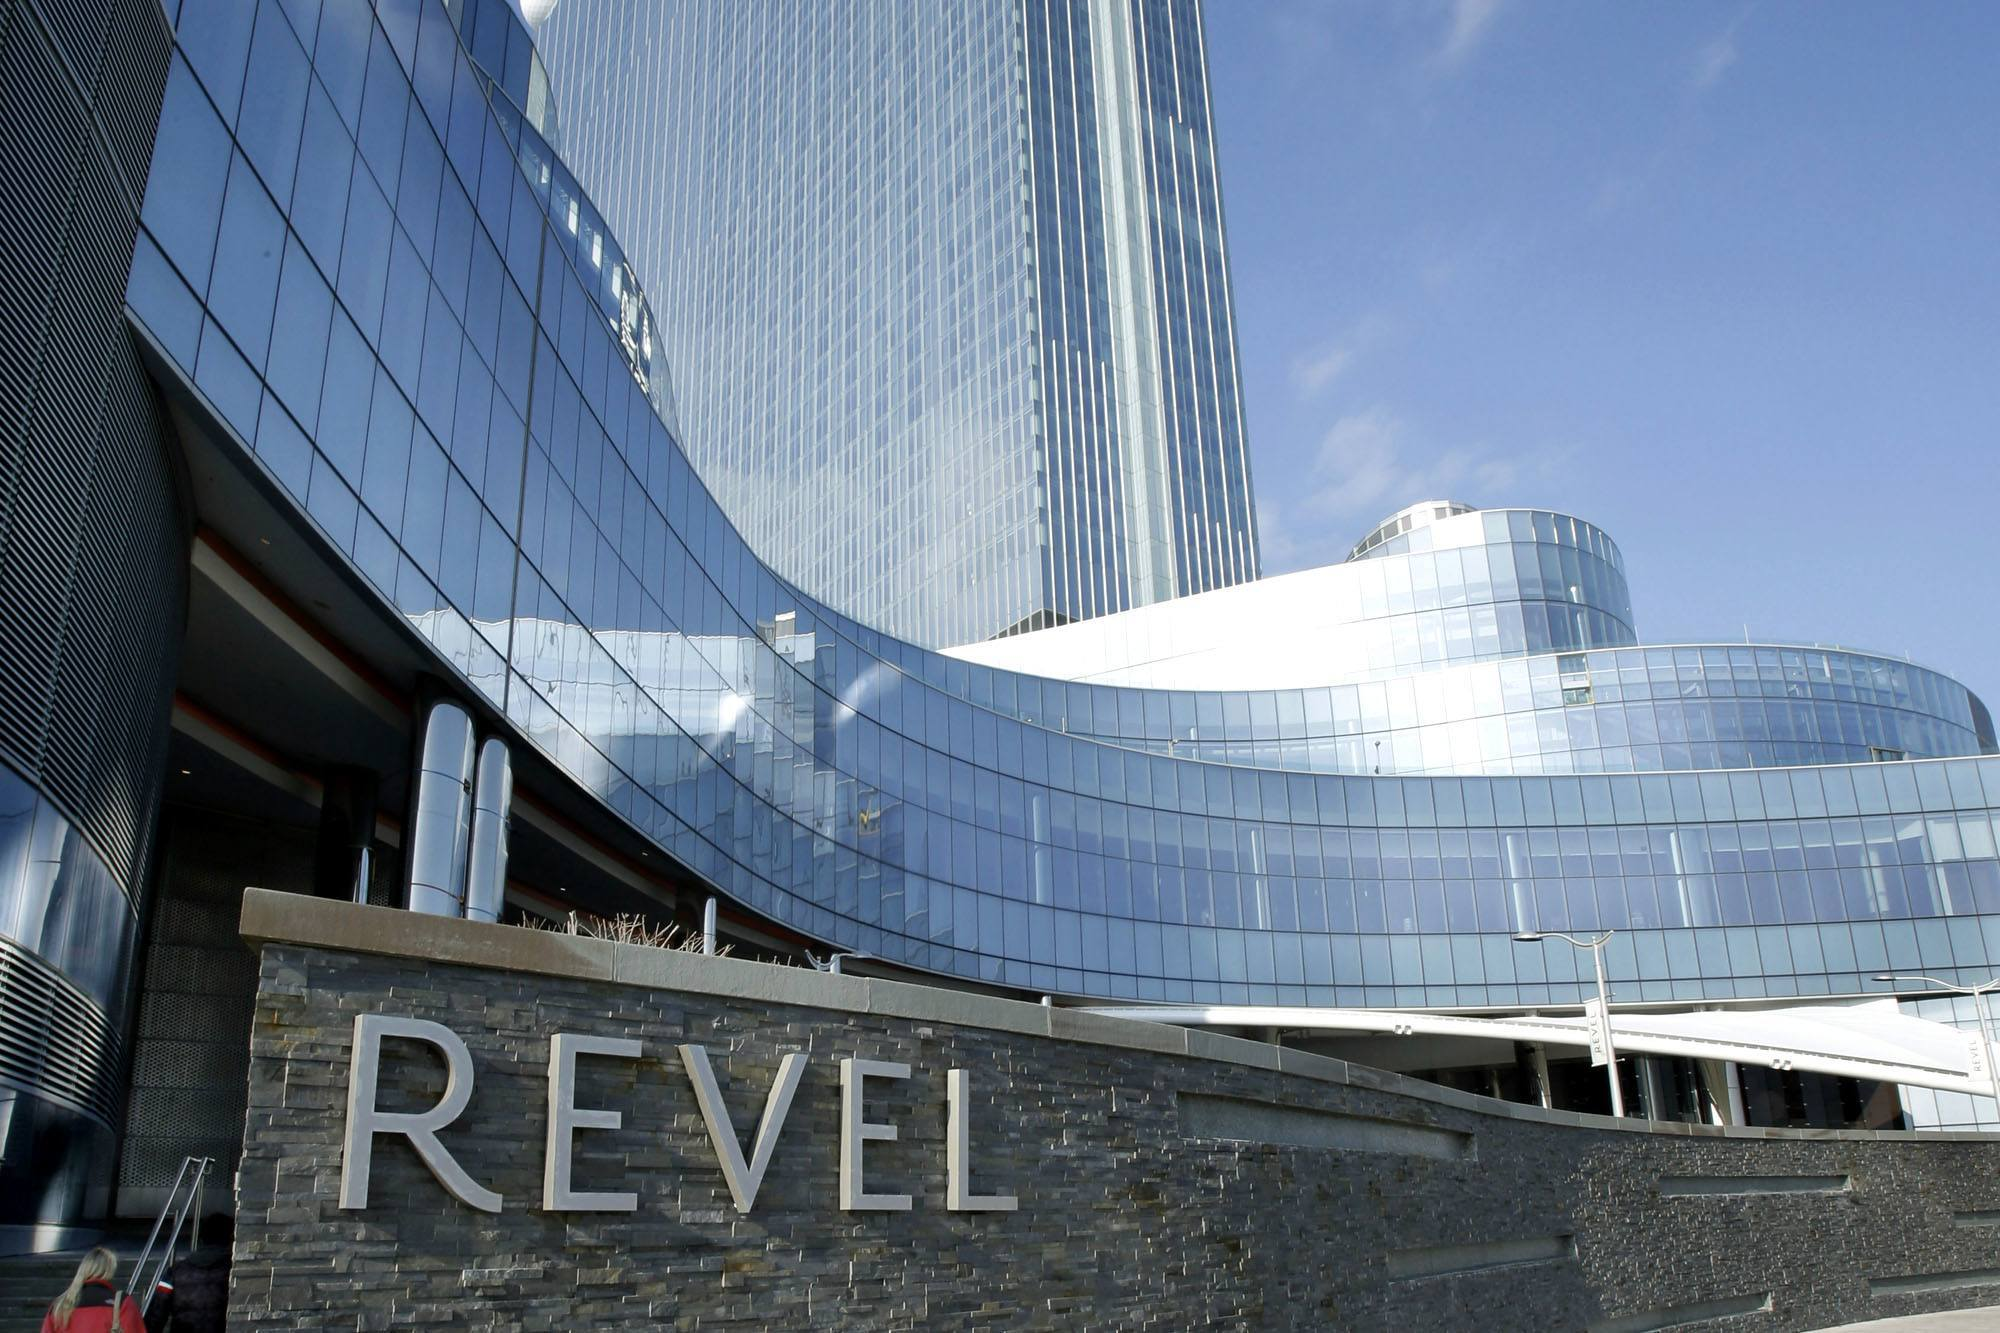 revel casino sale news